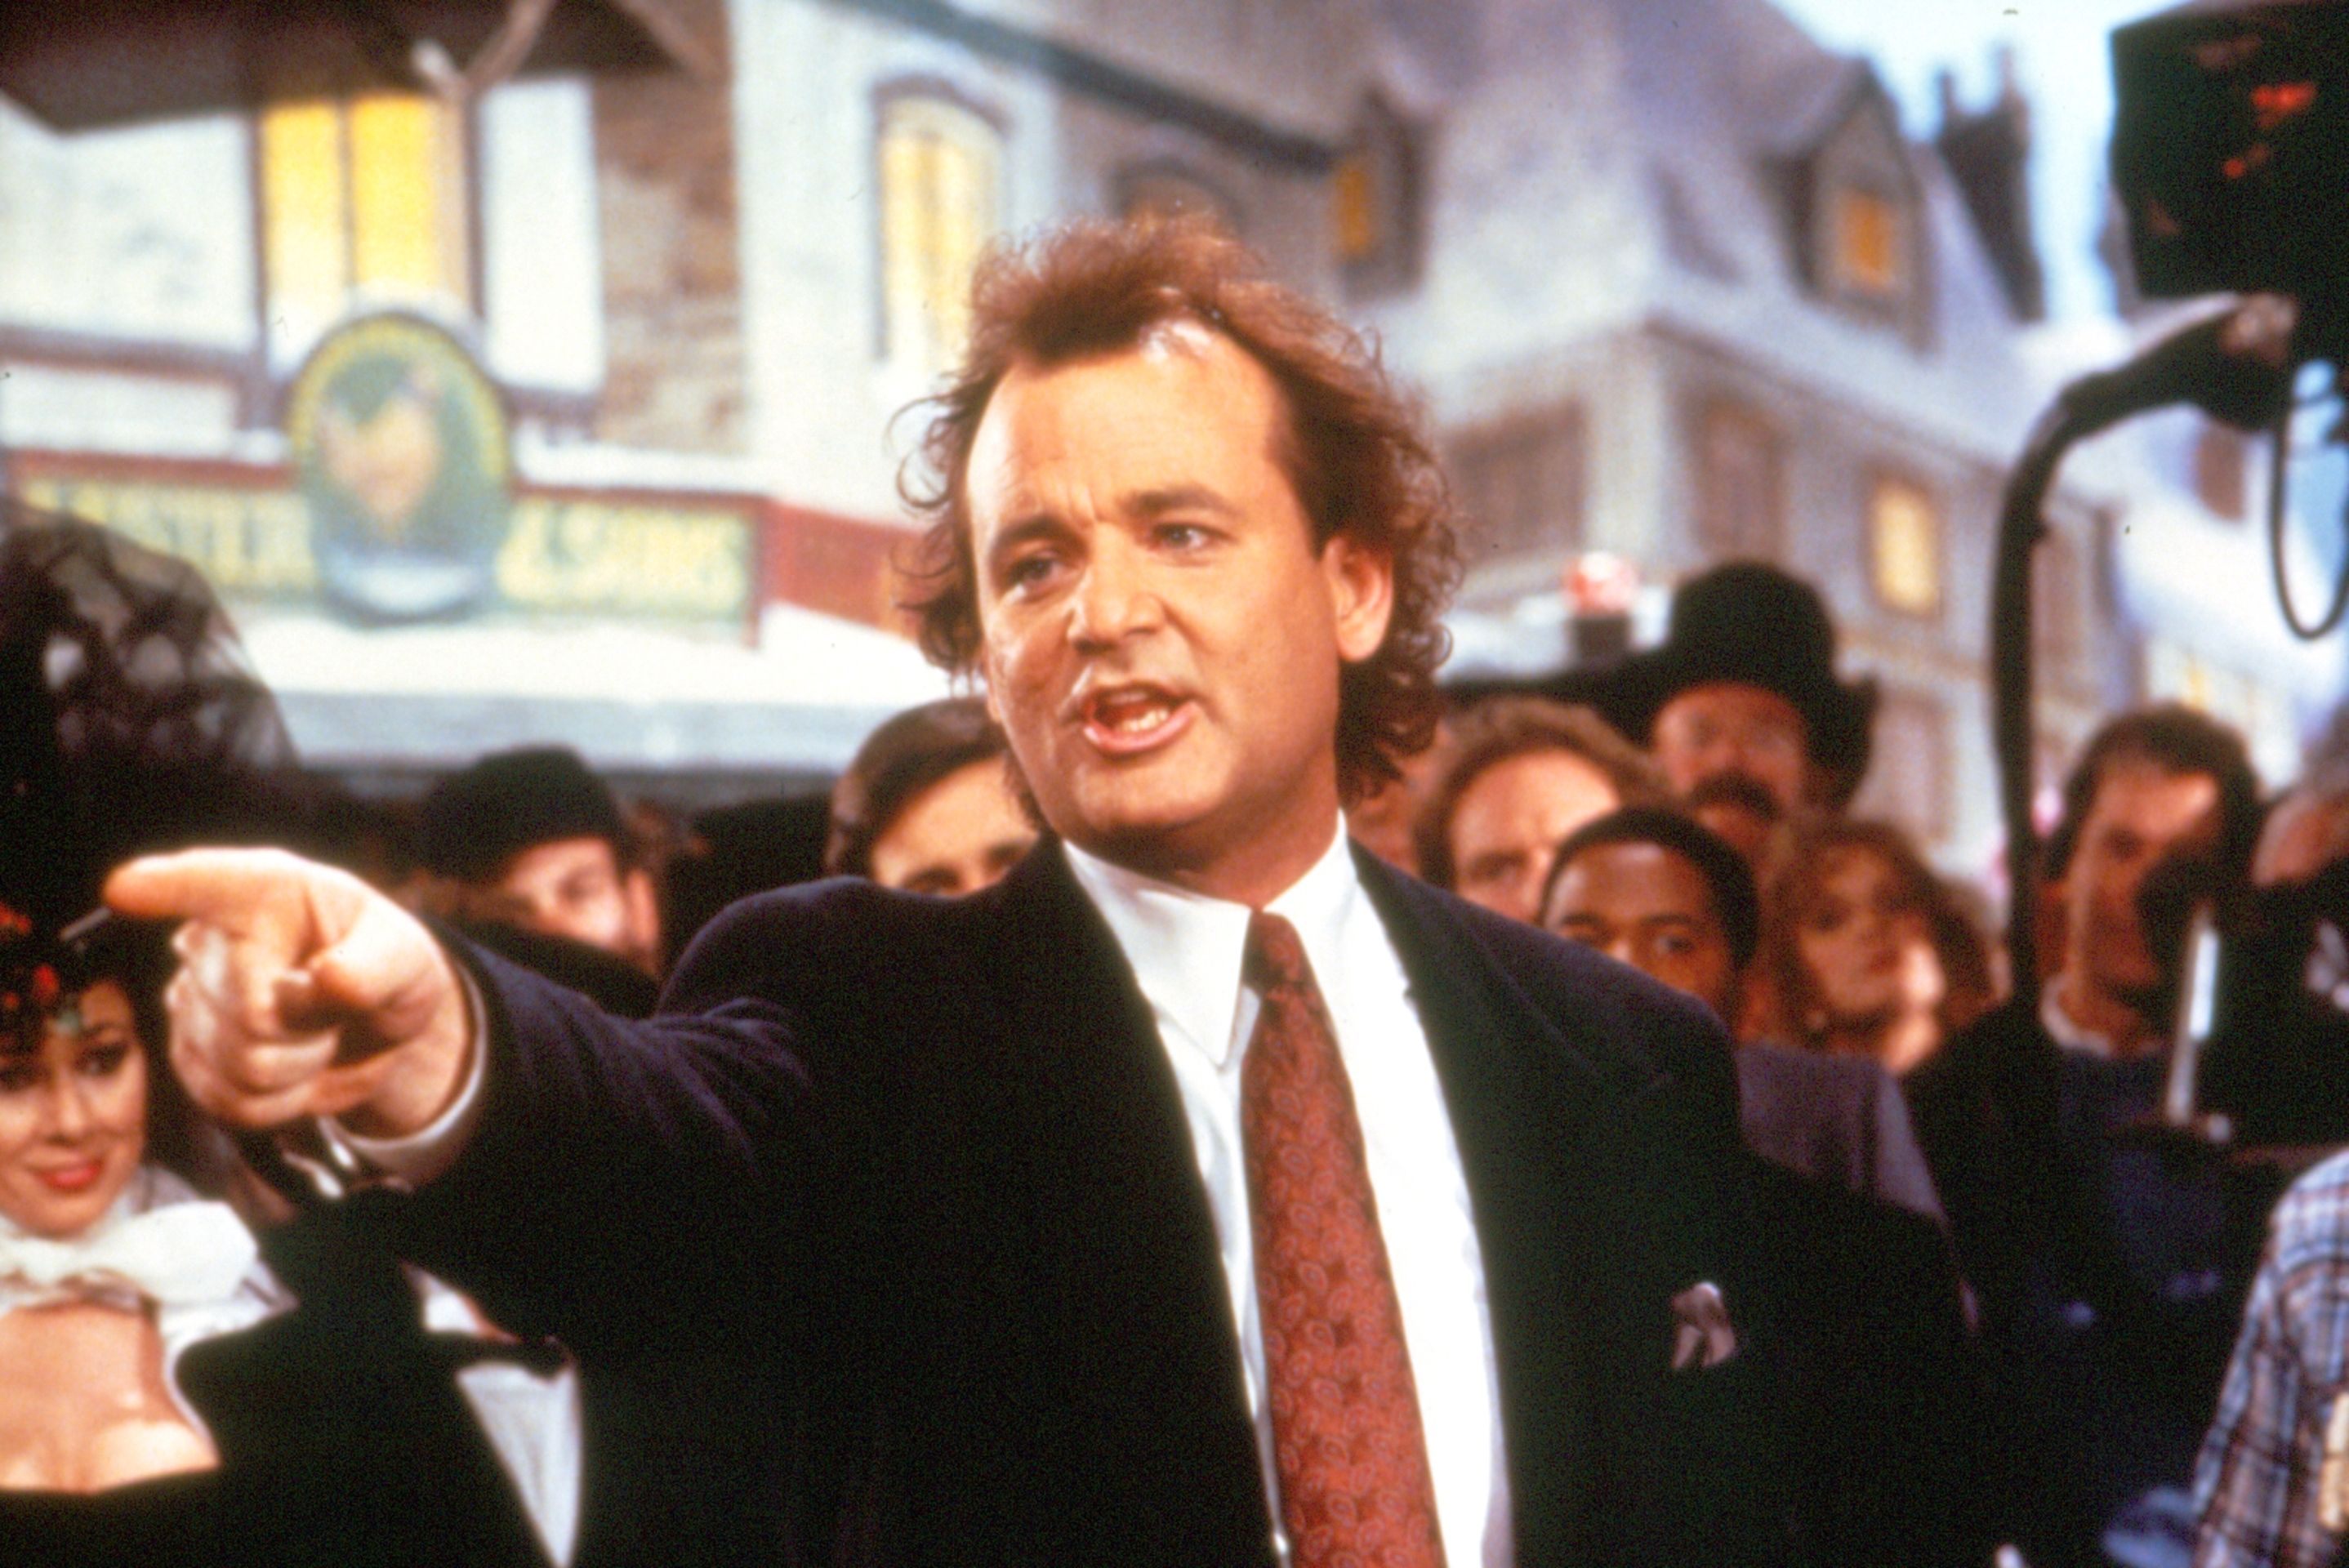 """Scrooged"" movie still, 1988.  Bill Murray as Frank Cross.  Based on ""A Christmas Carol"" by Charles Dickens, Murray plays the Scrooge character in this comedy directed by Richard Donner."